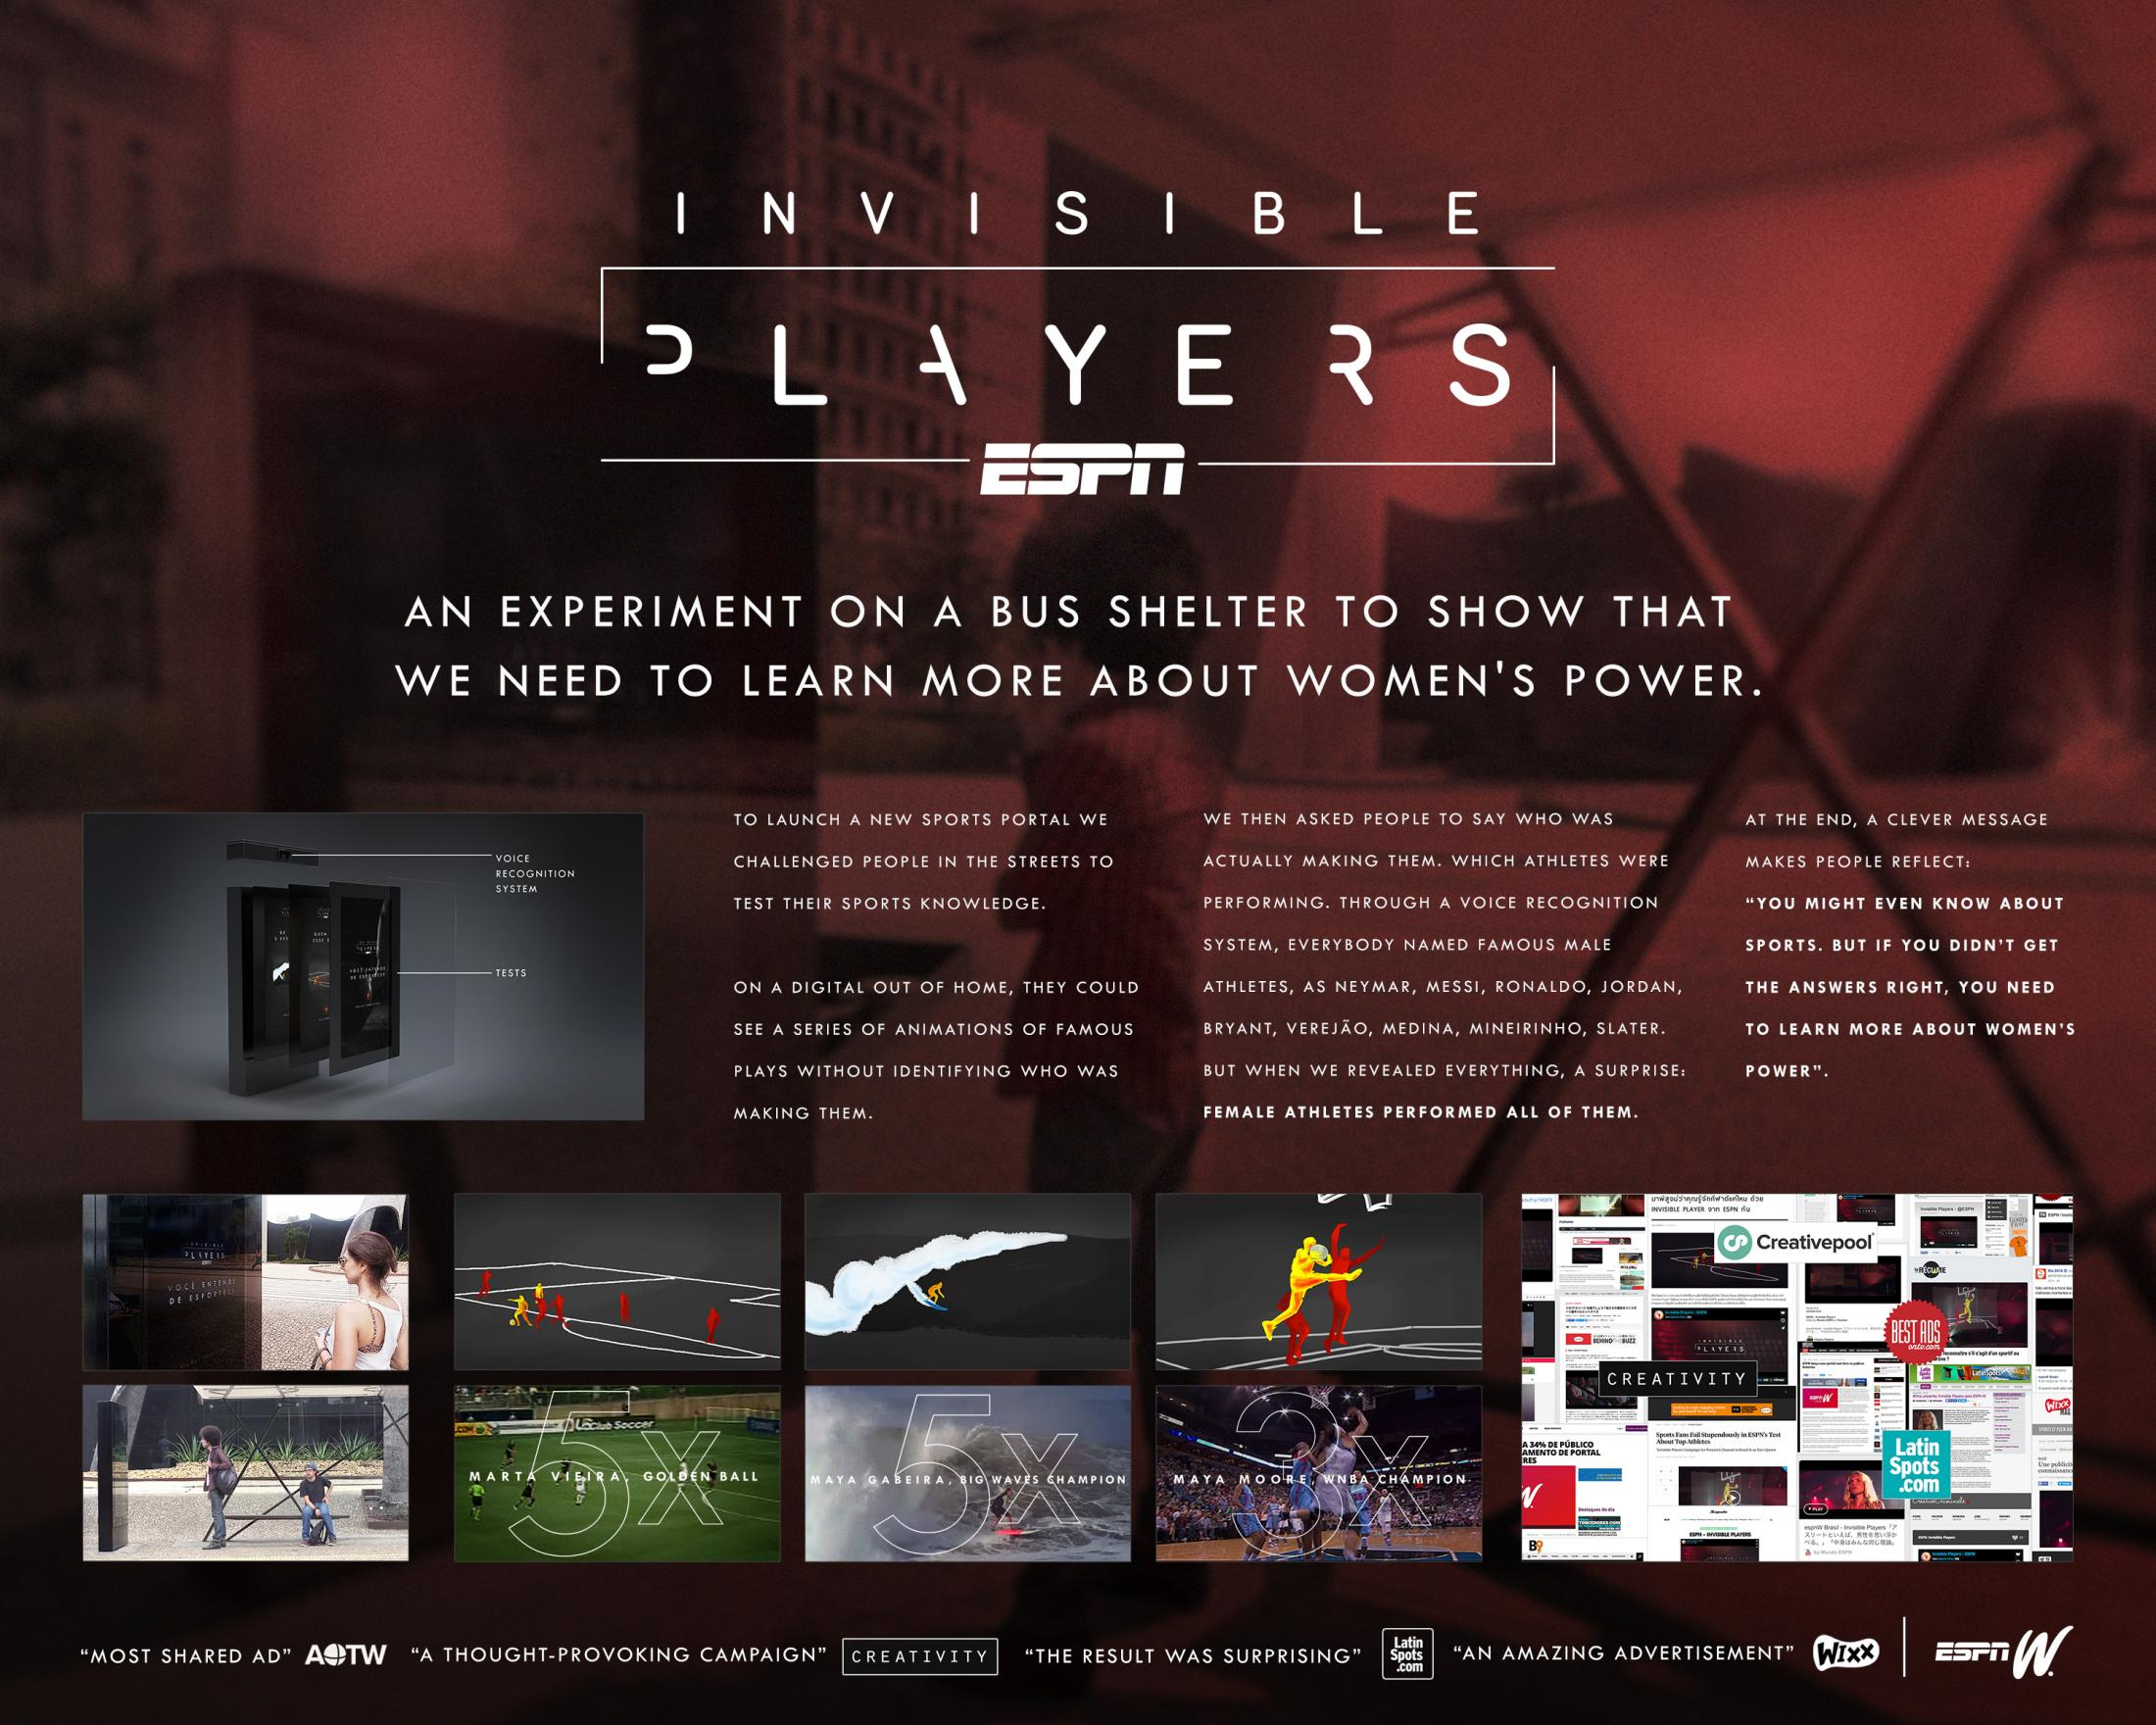 Thumbnail for ESPN W - Invisible Players